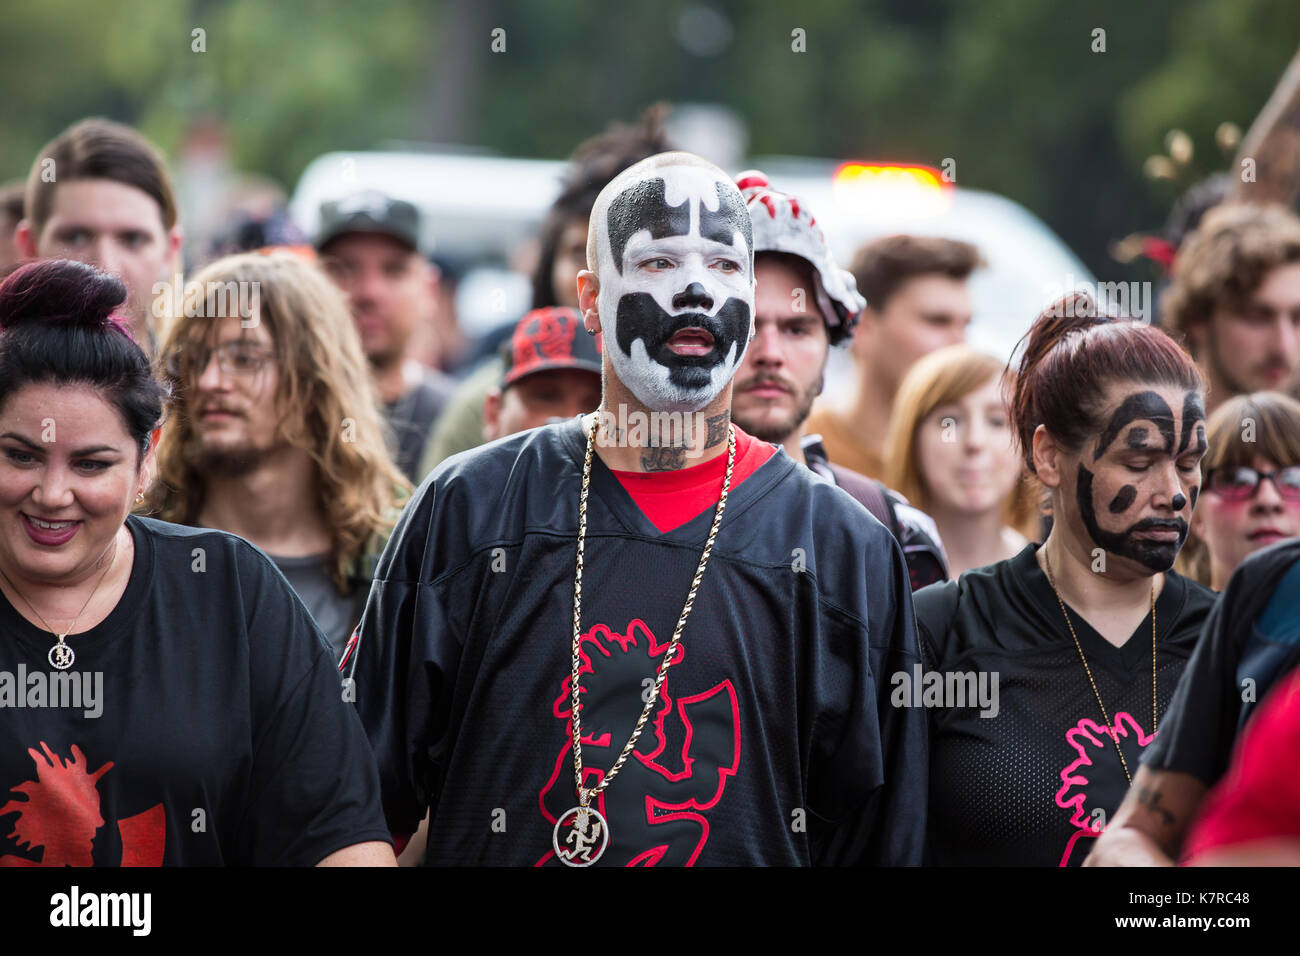 WASHINGTON, DC - September 16, 2017: Shaggy 2 Dope (Joseph Utsler) leads a group of protesters during the Juggalo Stock Photo